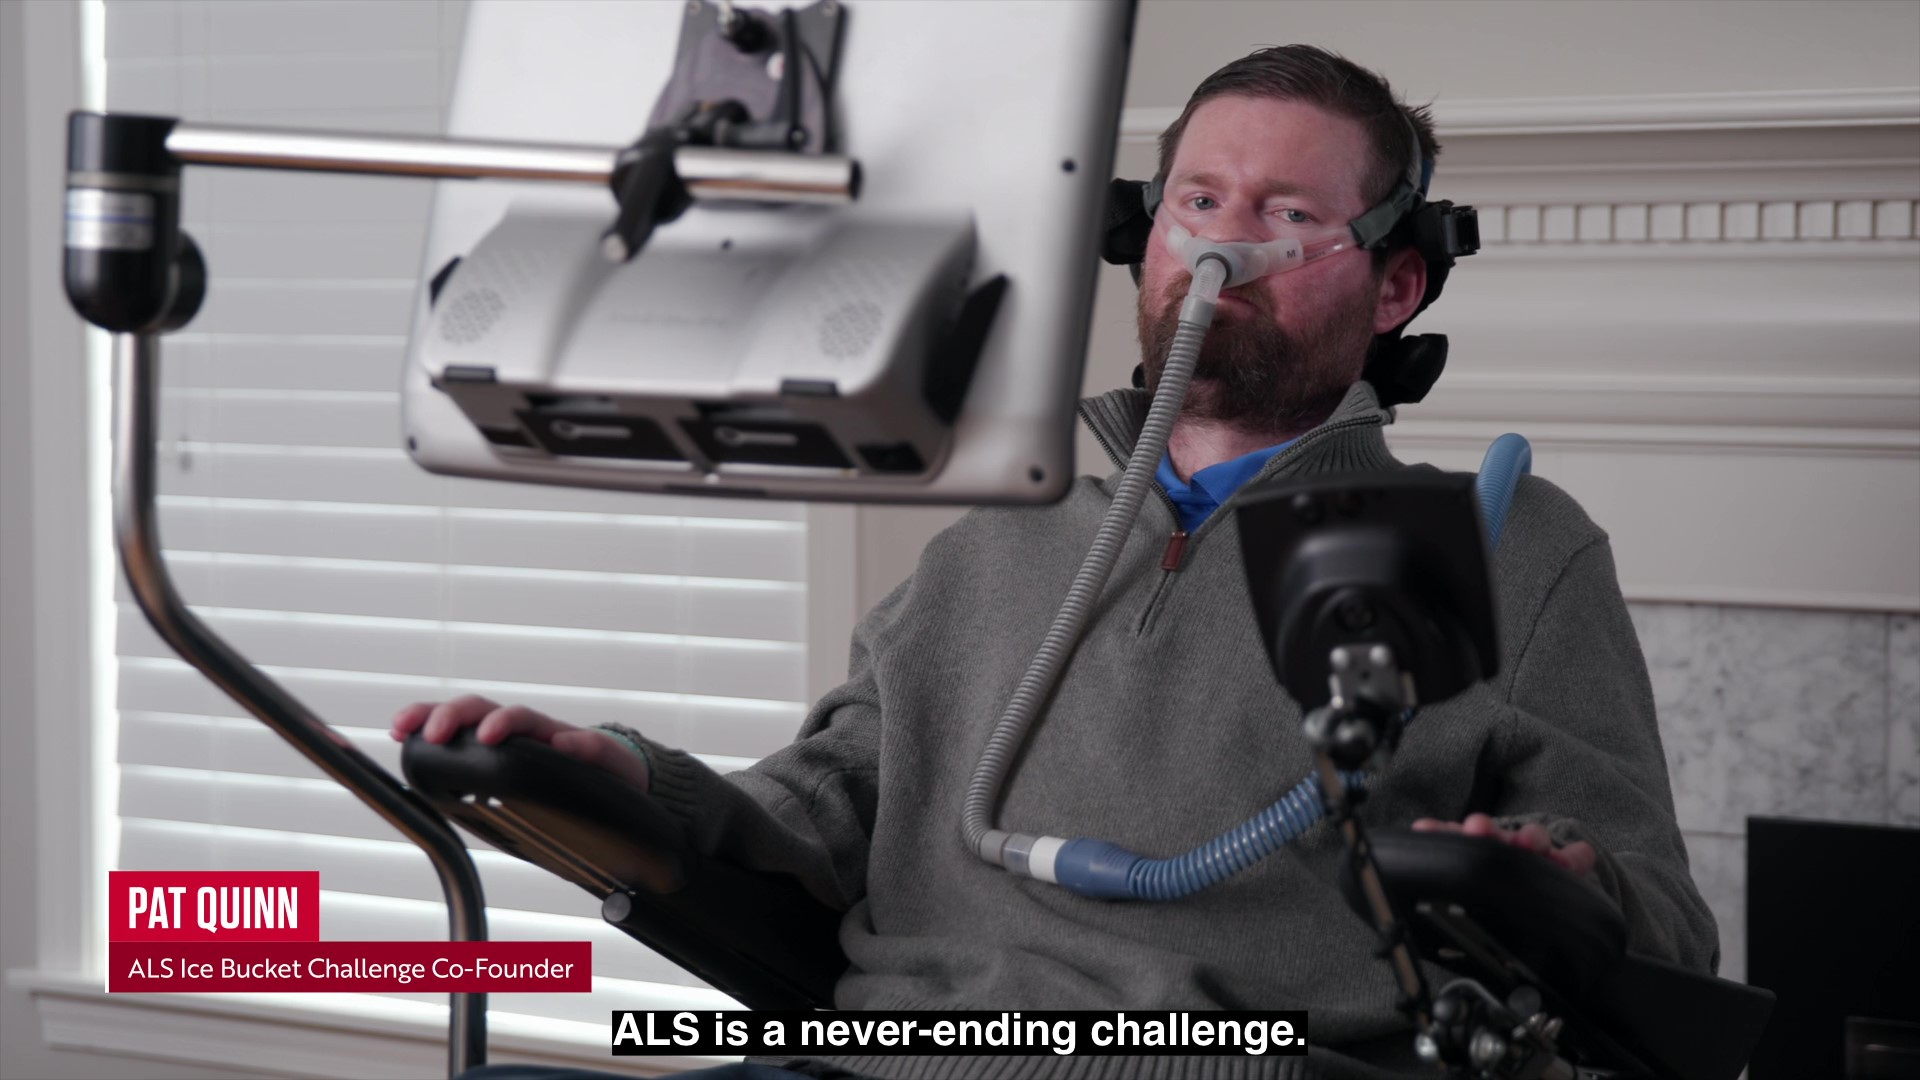 Continuing to Challenge ALS Five Years Later